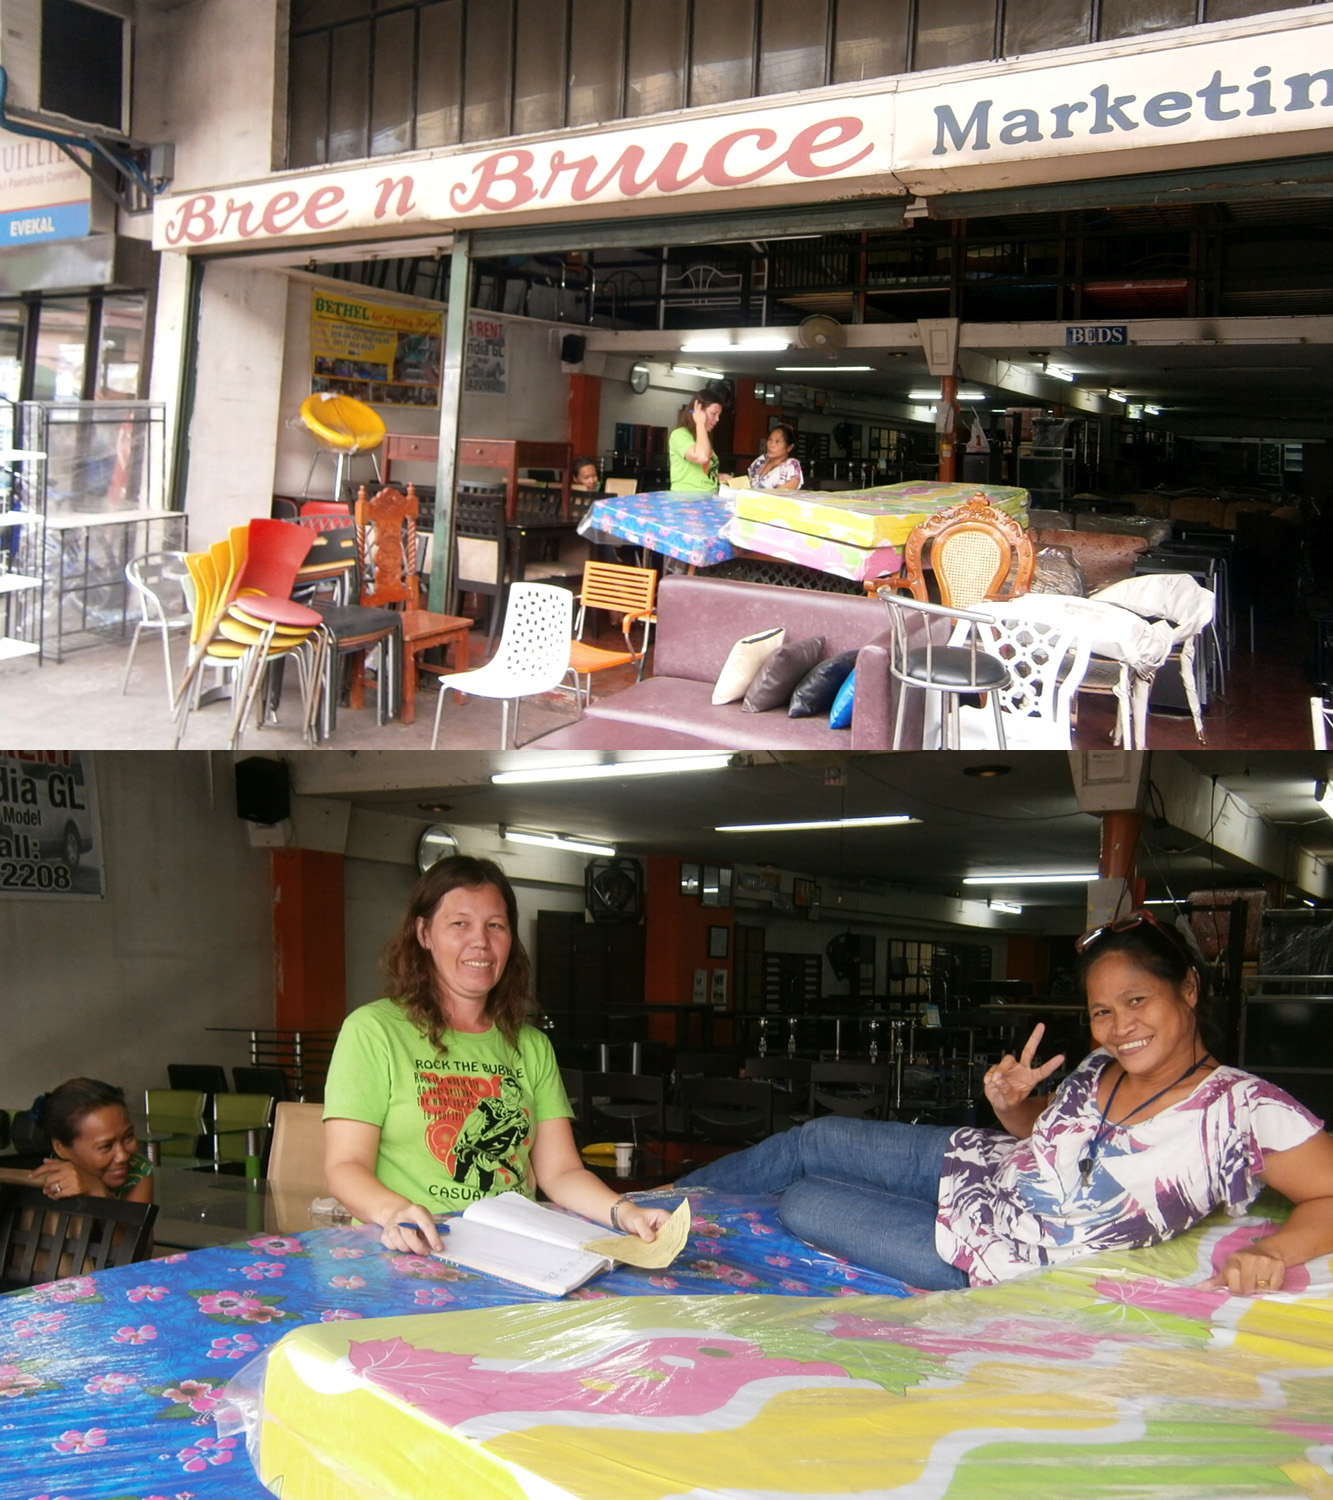 Bree n Bruce Marketing furniture store and its lovely staff - Paco Manila